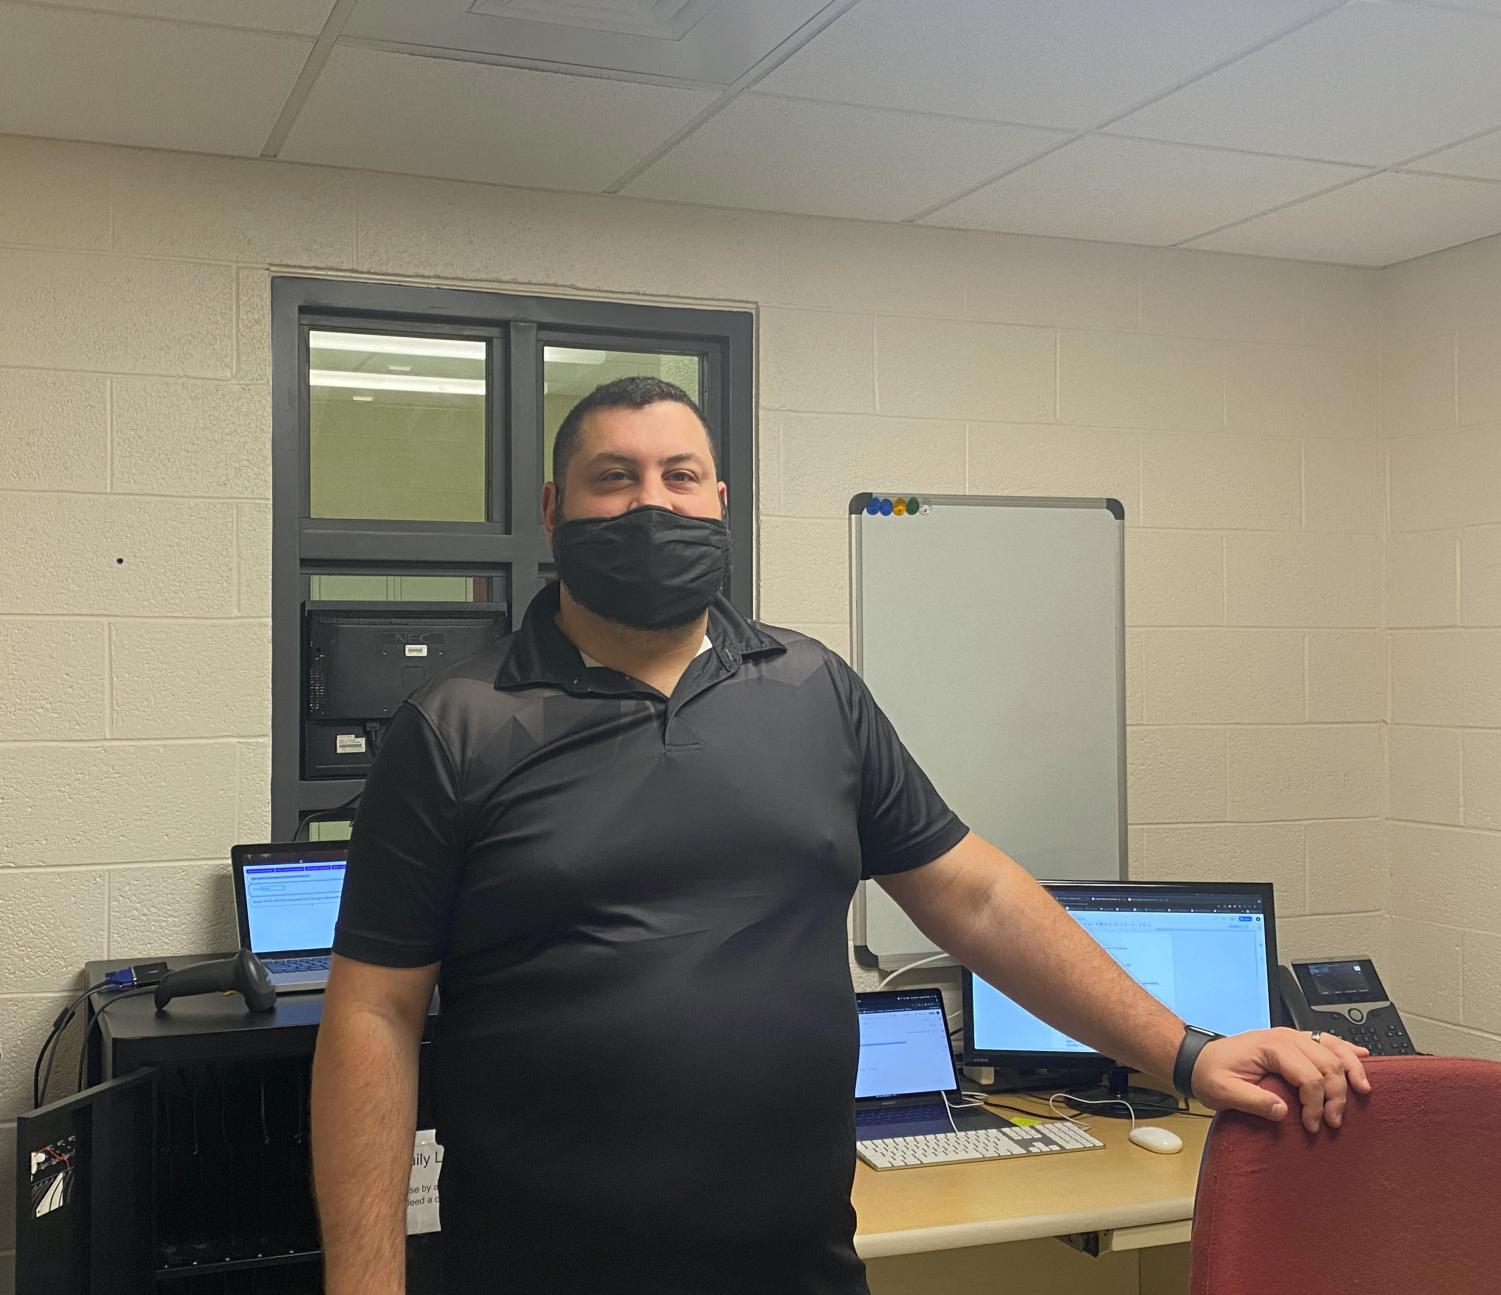 Drawn to technology from a young age, Feldman joins WA as the new MIS technology worker.